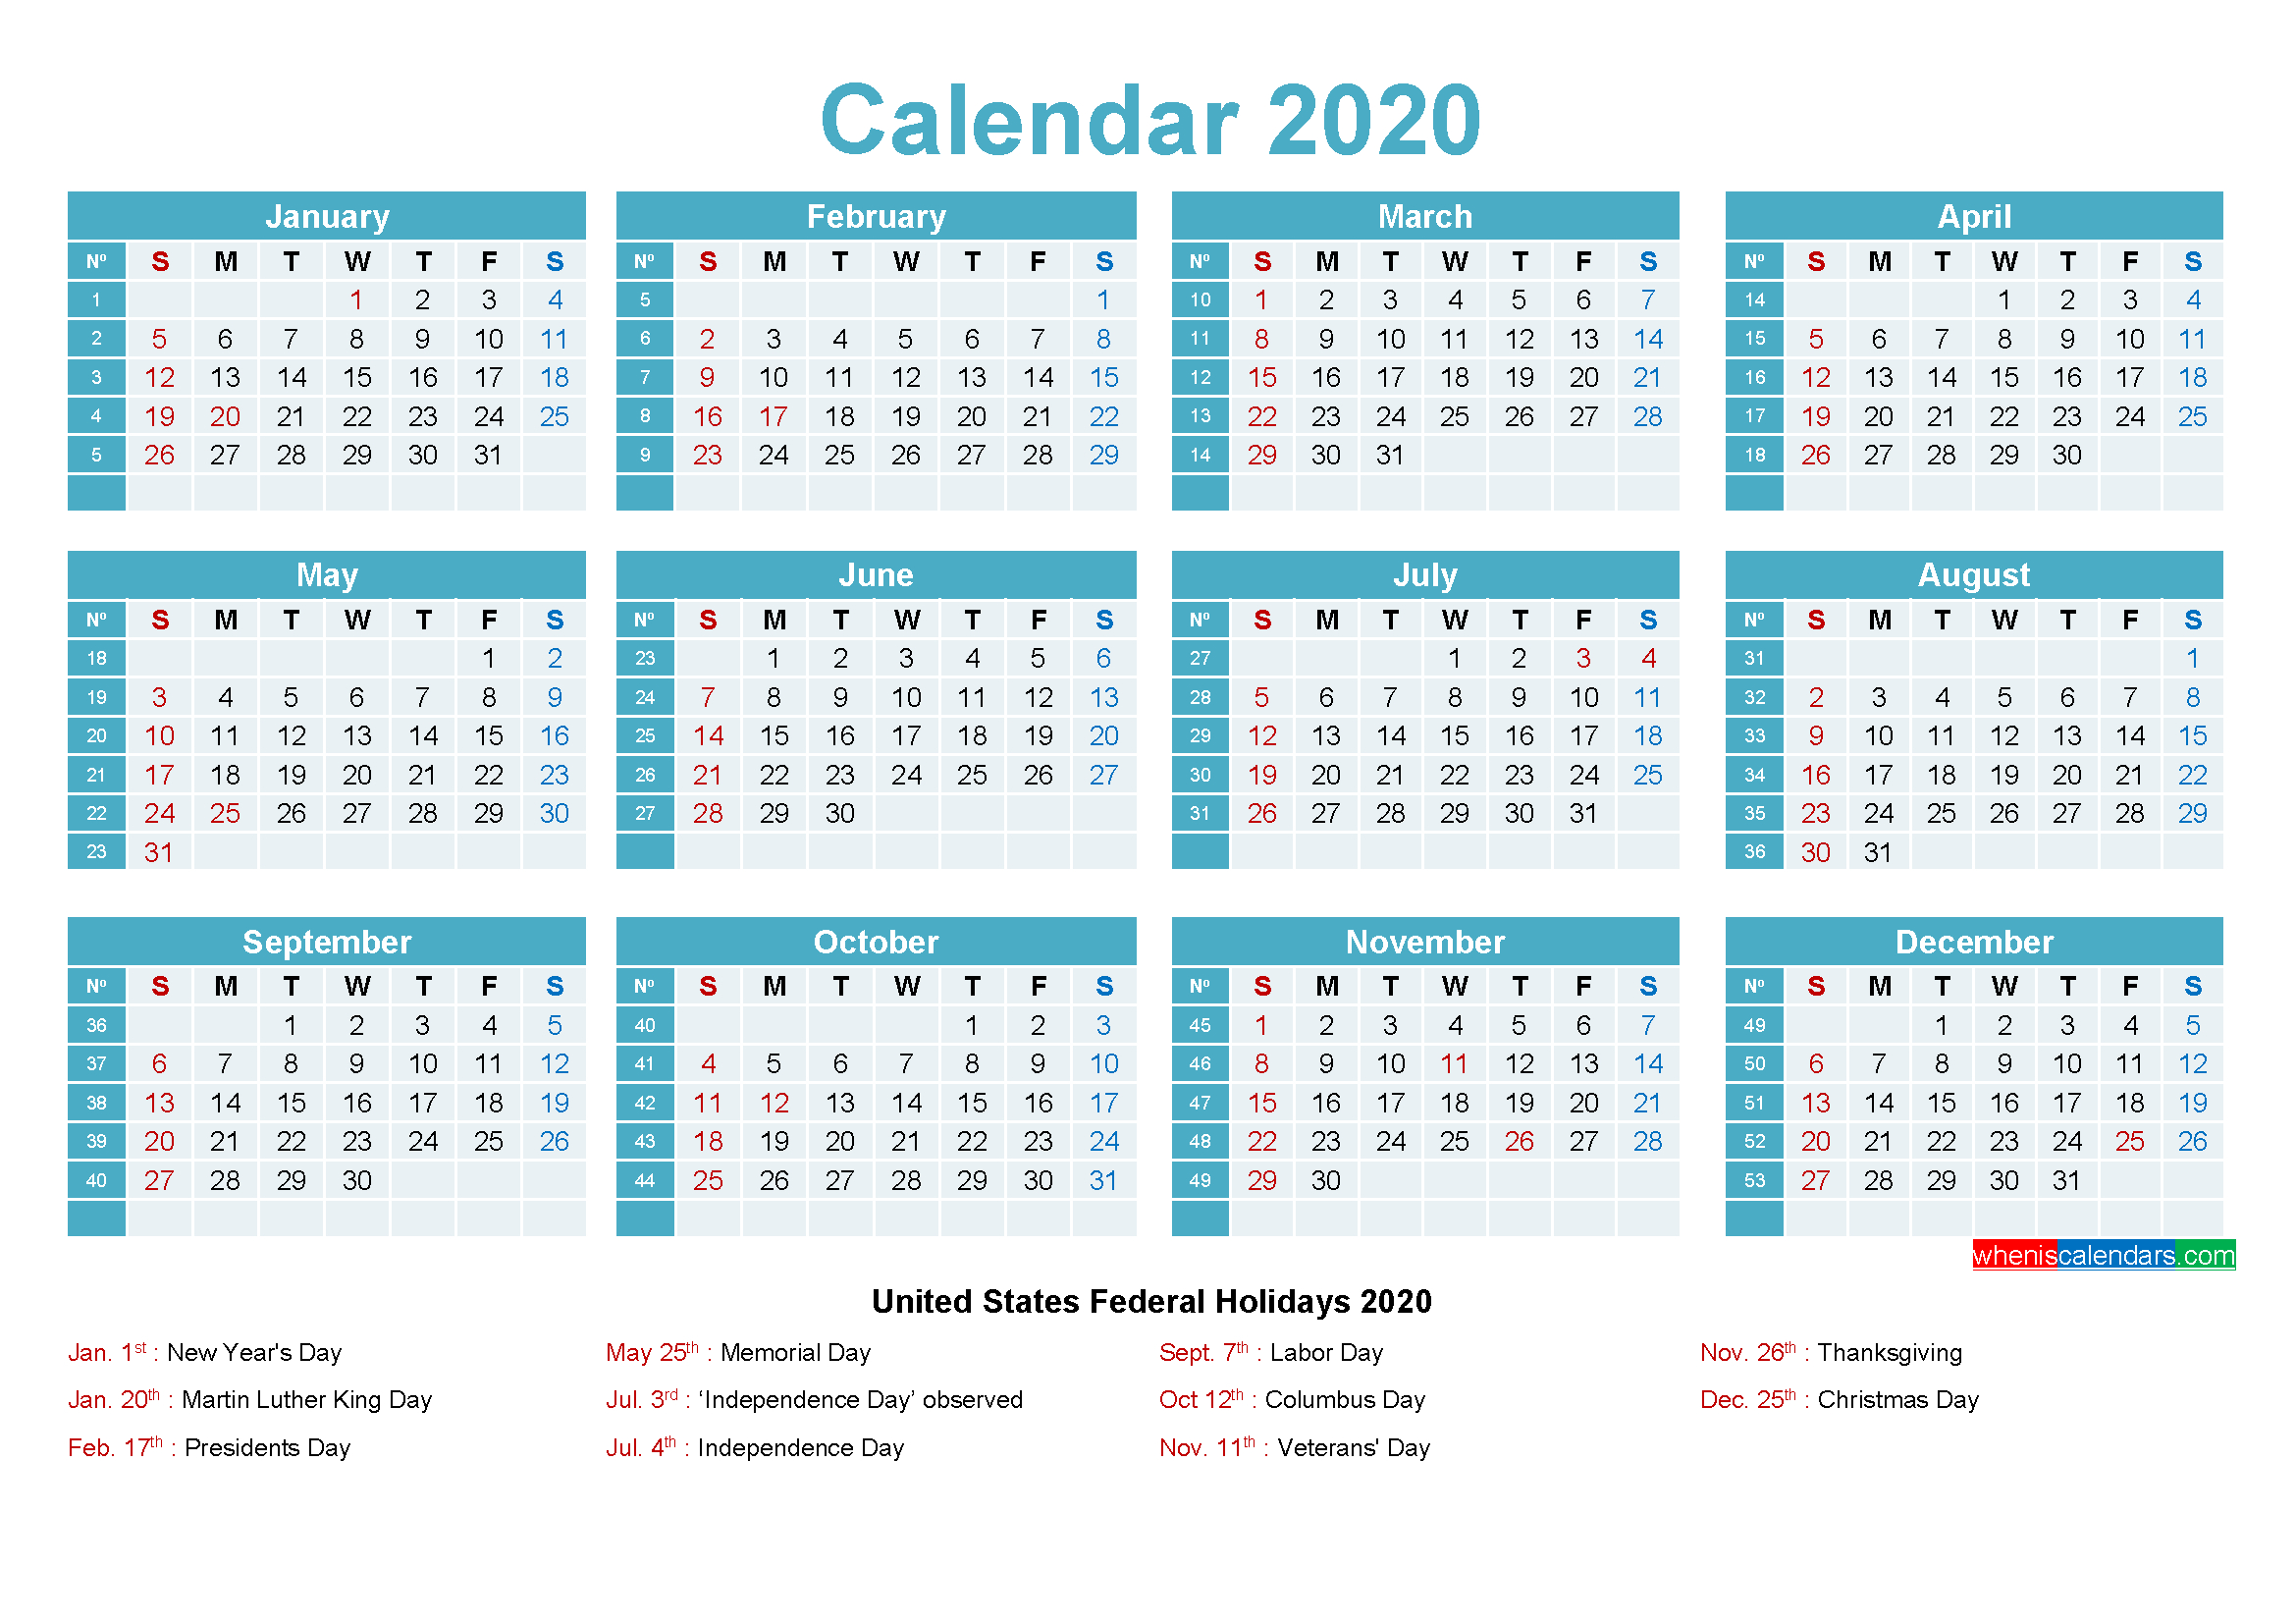 Maxine Desk Calendar 2020 With Holidays Printable – Free